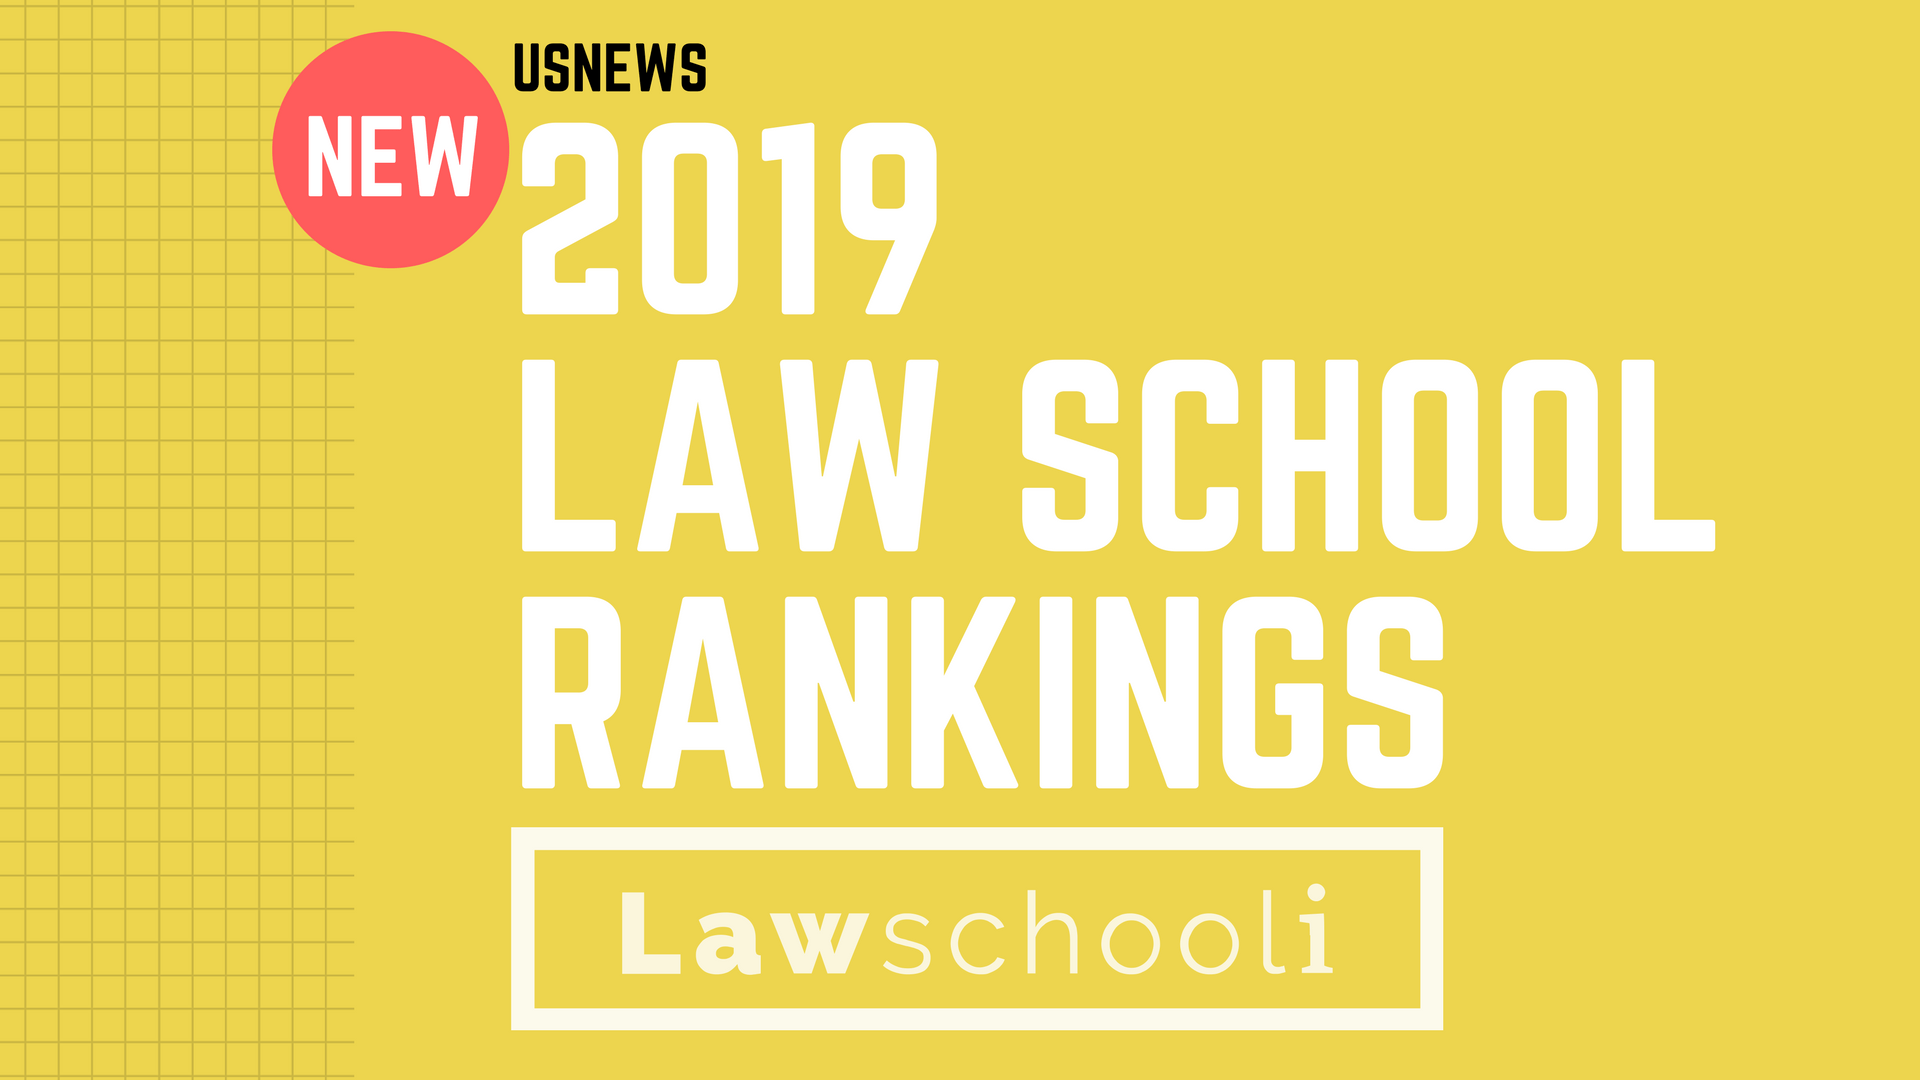 New 2019 USNews Law School Rankings - LawSchooli